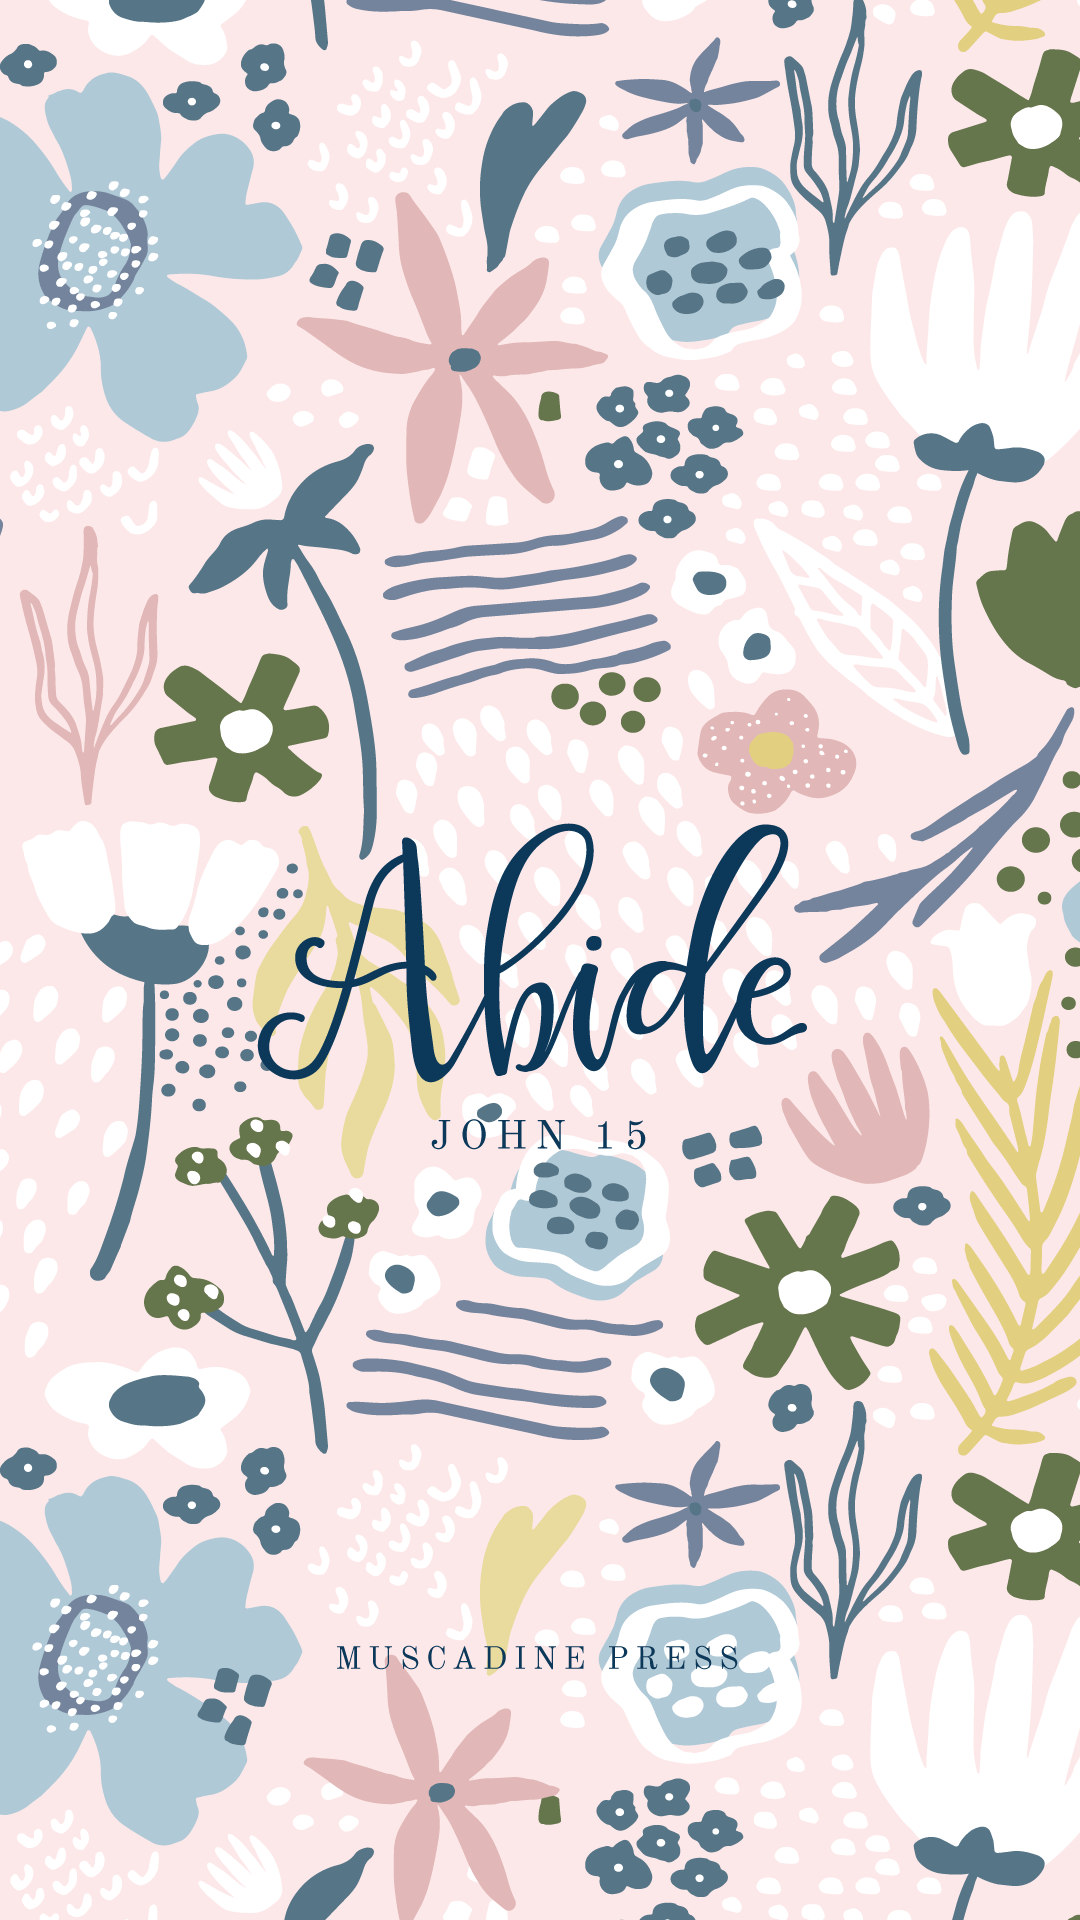 Abide lock screen from Muscadine Press